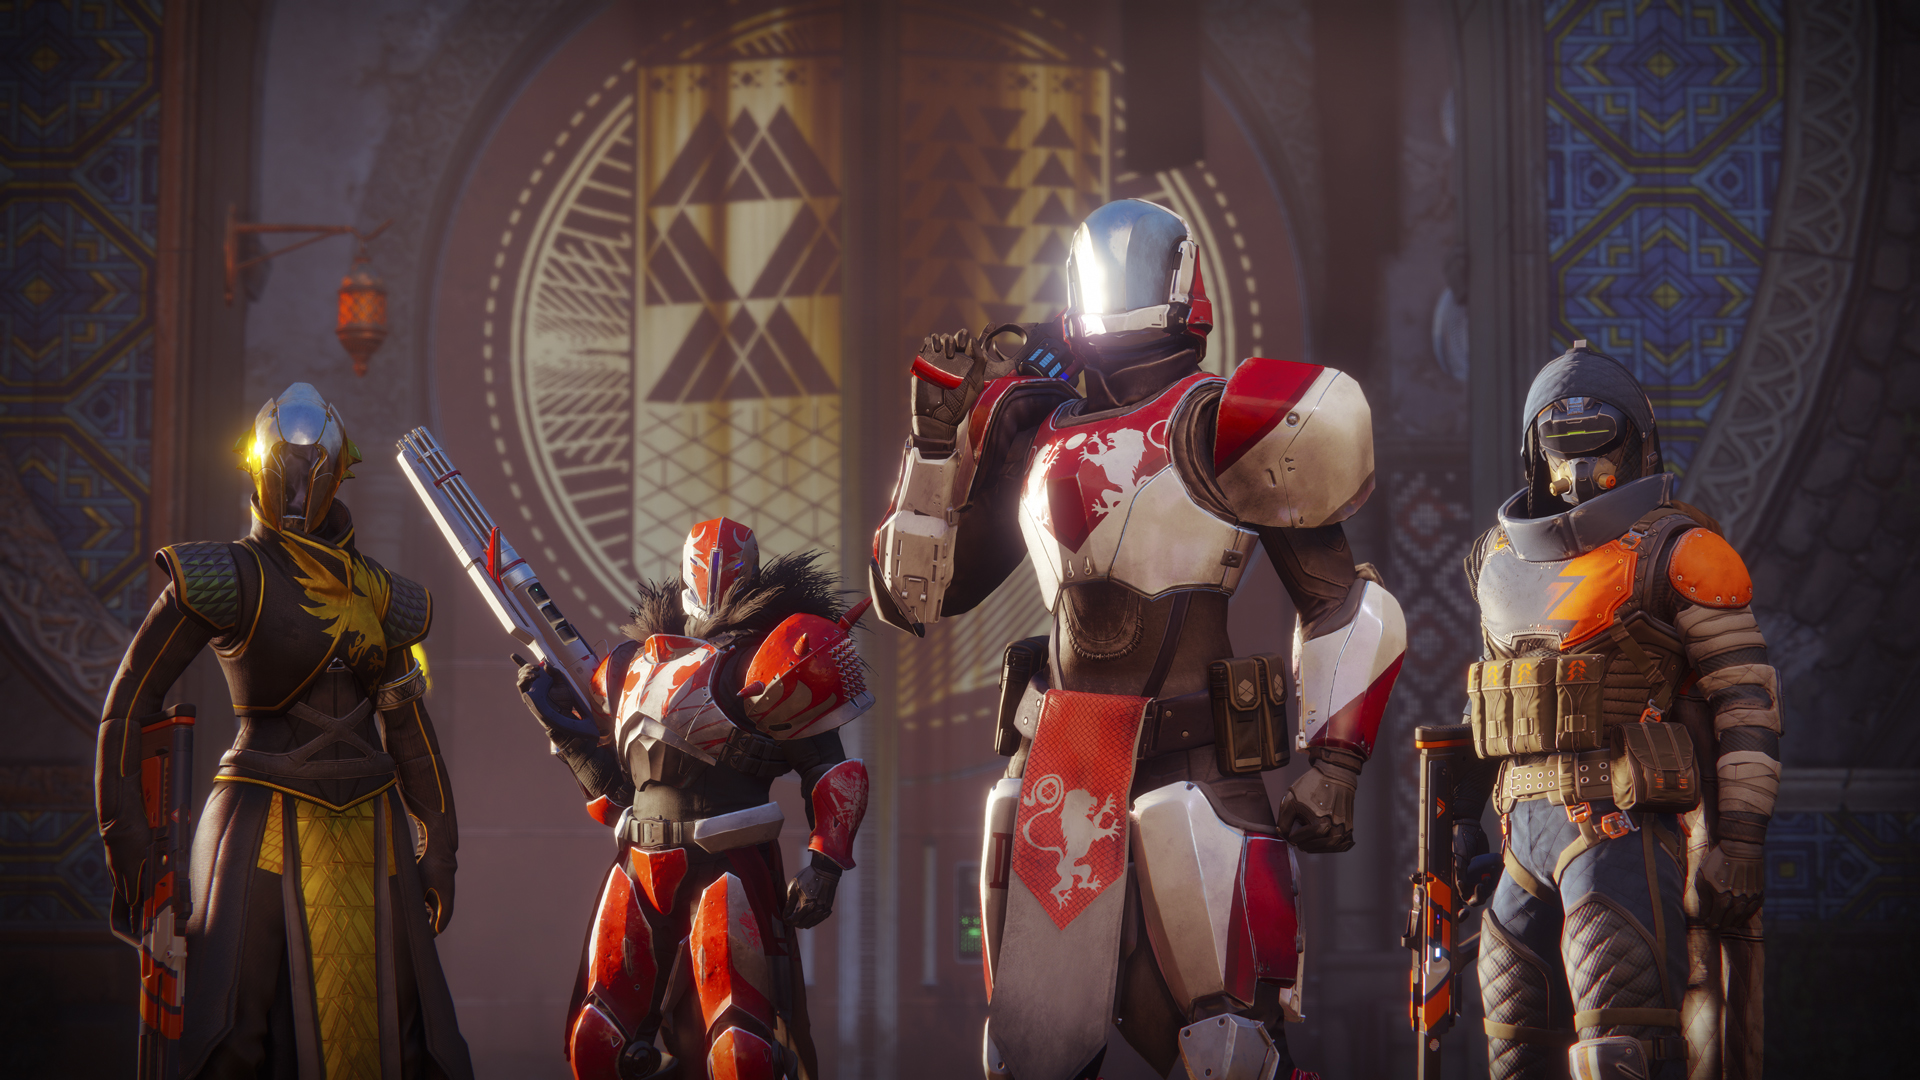 Bungie splits from Activision, takes Destiny with it bungie-splits-from-activision-takes-destiny-with-it